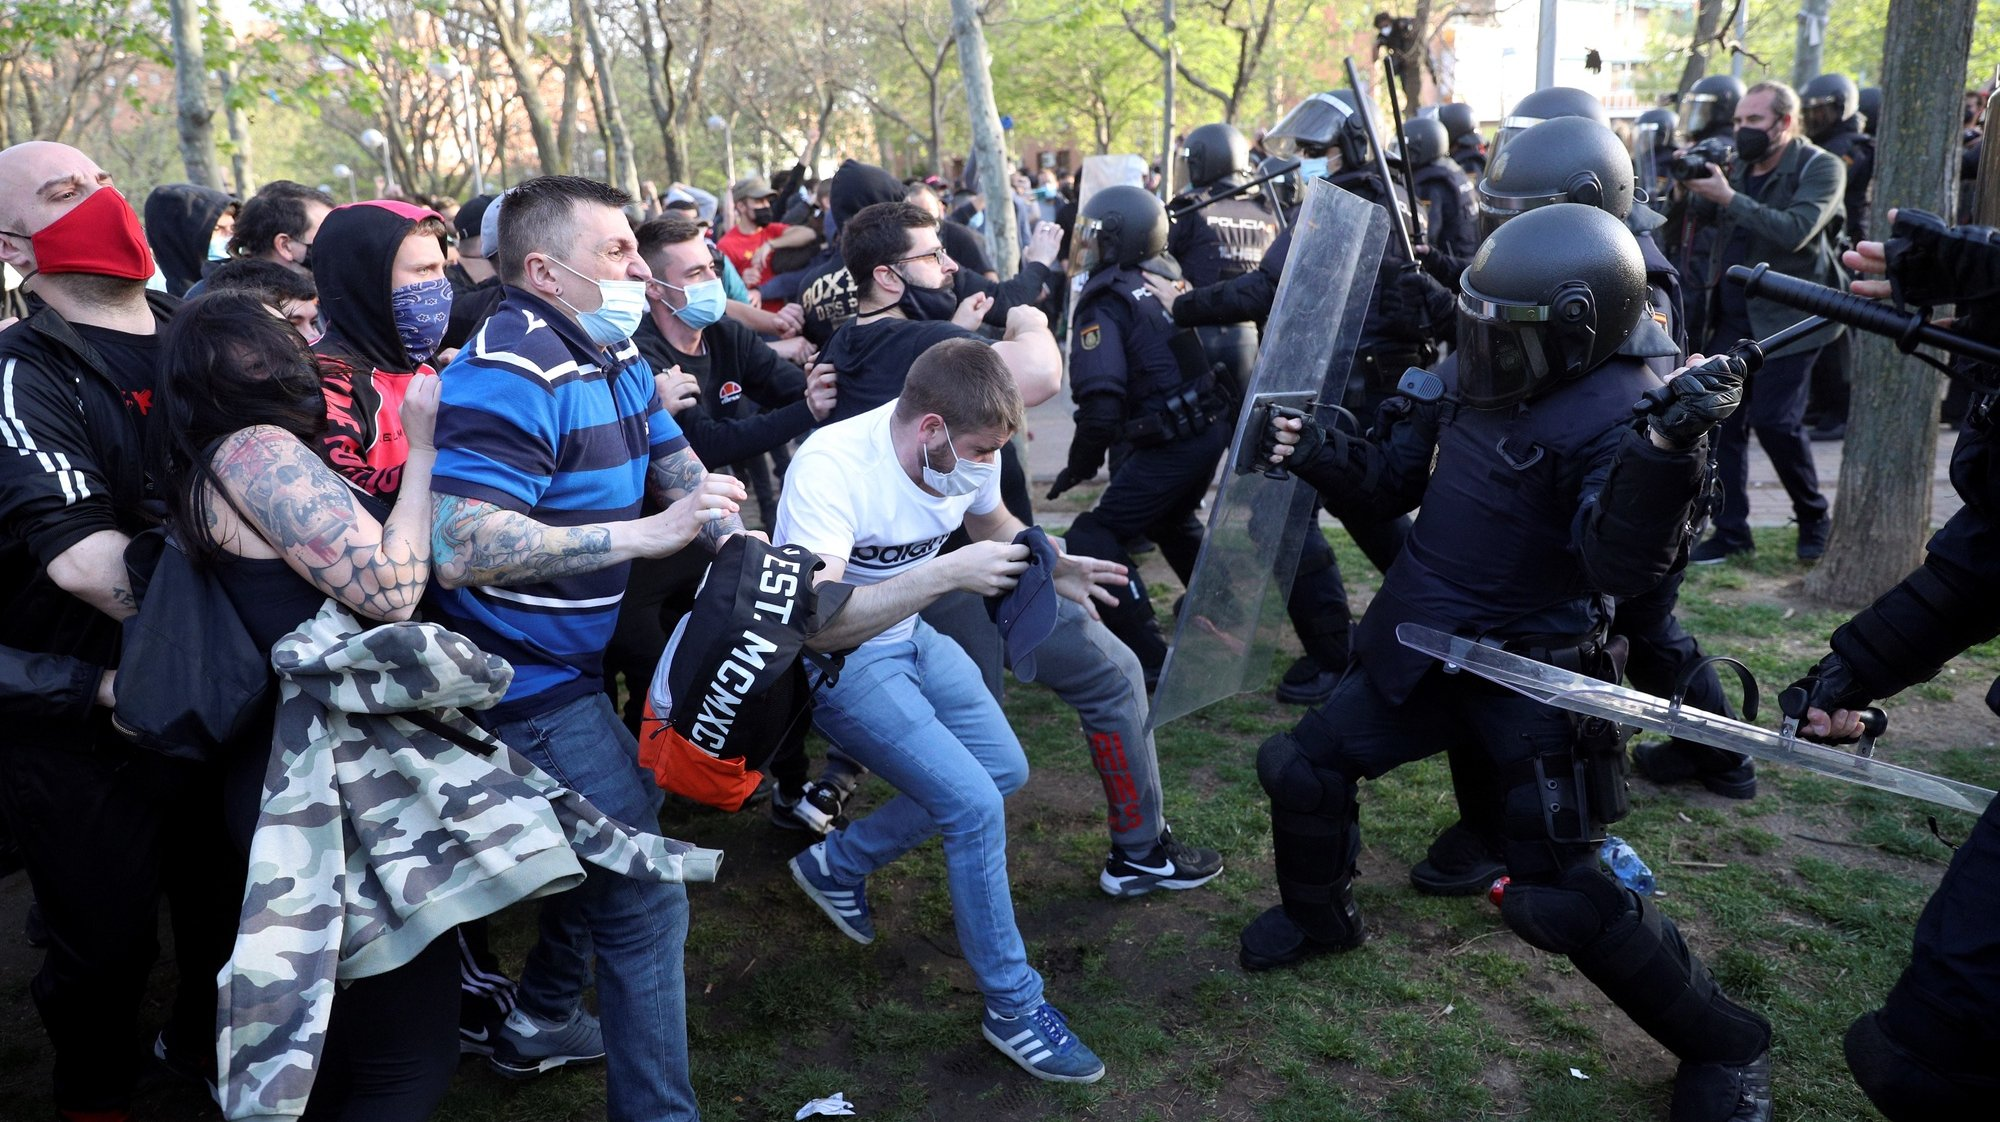 epa09121012 Spanish National Police members clash with protesters during Spanish far-right party VOX's regional election kick-off campaign rally in Vallecas, Madrid, Spain, 07 April 2021. Madrid will hold regional elections on 04 May 2021 to elect the 12th Assembly of the Community of Madrid.  EPA/RODRIGO JIMENEZ